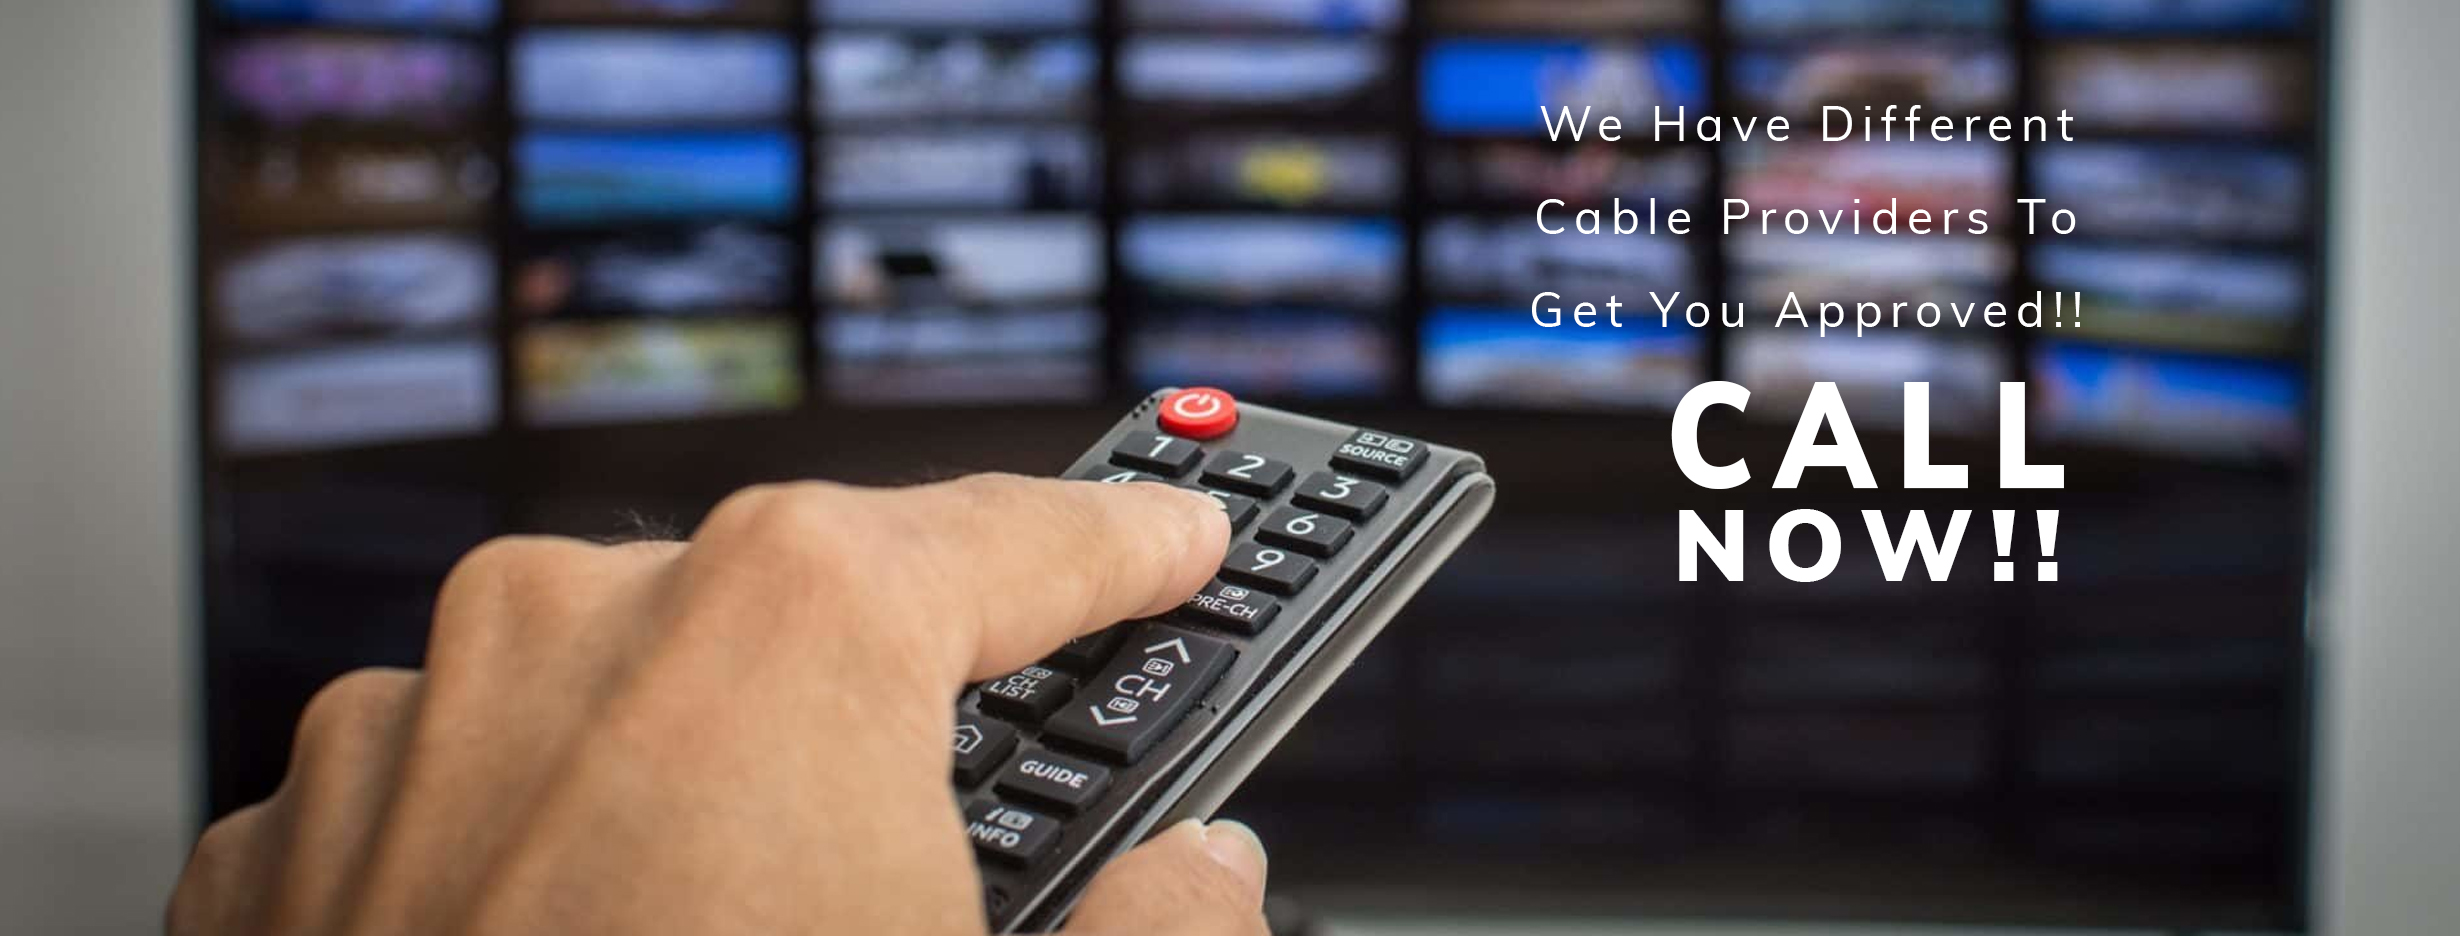 Different Cable companies for you